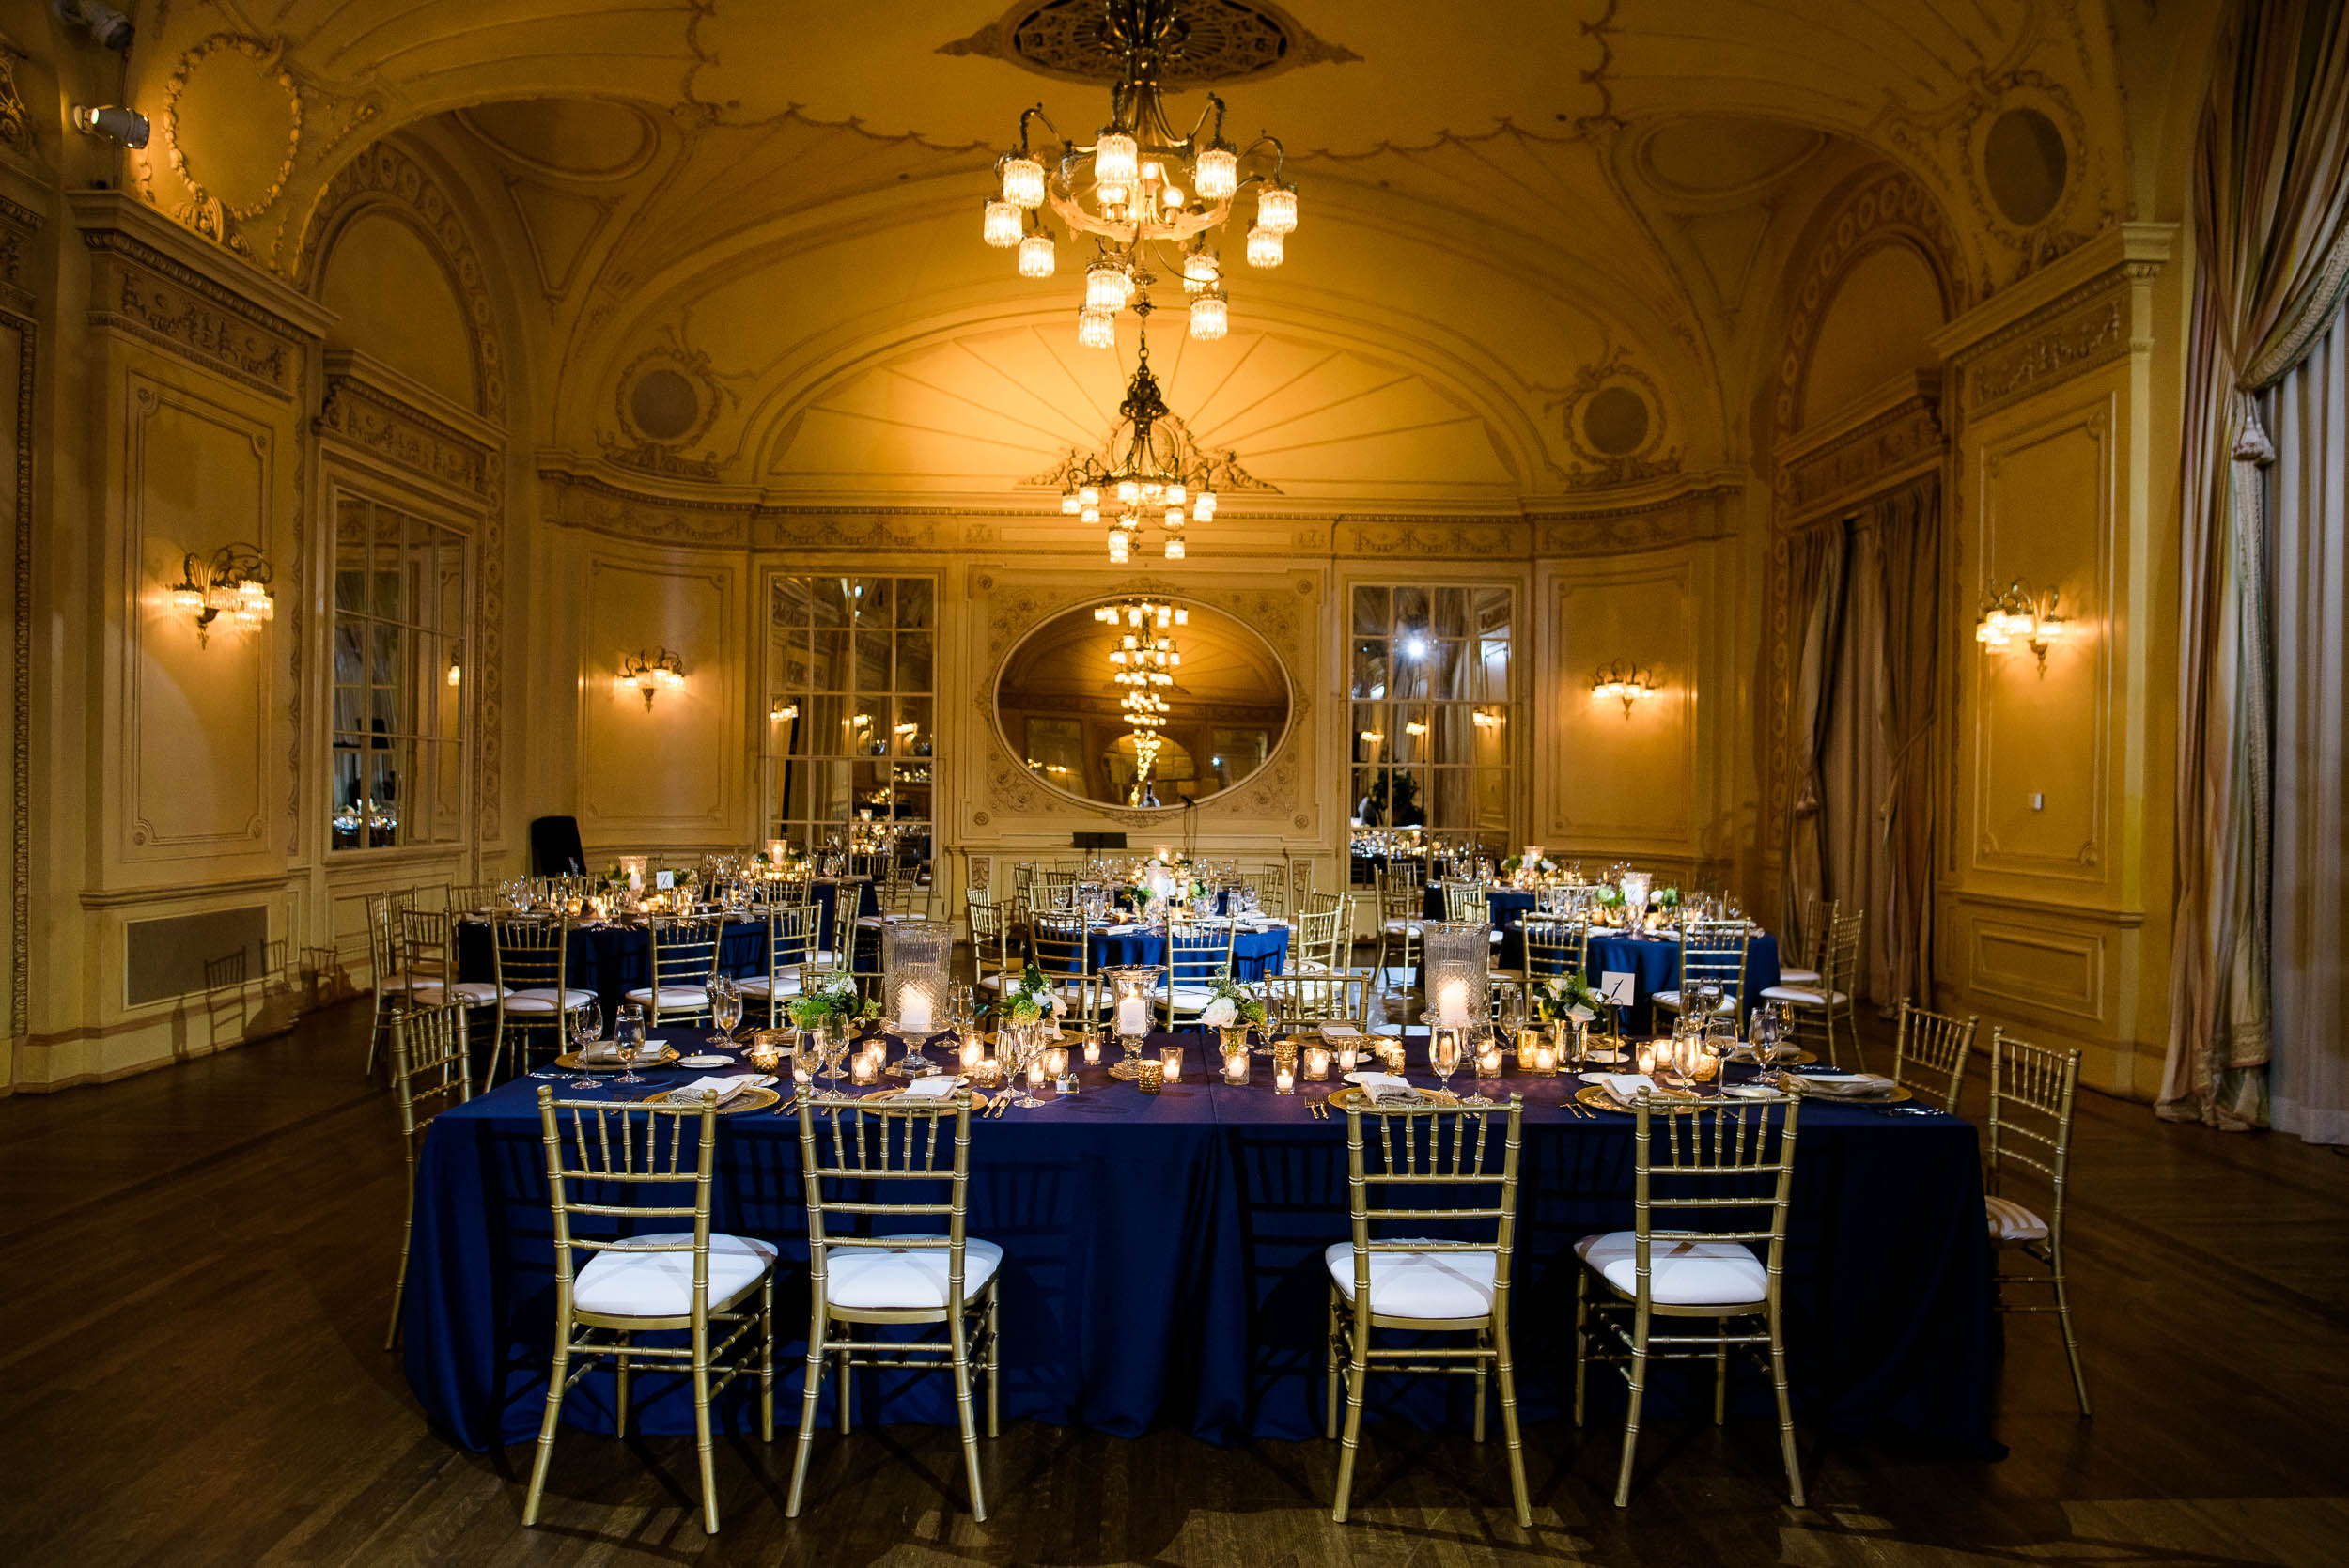 Wedding reception decor for luxurious fall wedding at the Chicago Symphony Center captured by J. Brown Photography. See more wedding ideas at jbrownphotography.com!